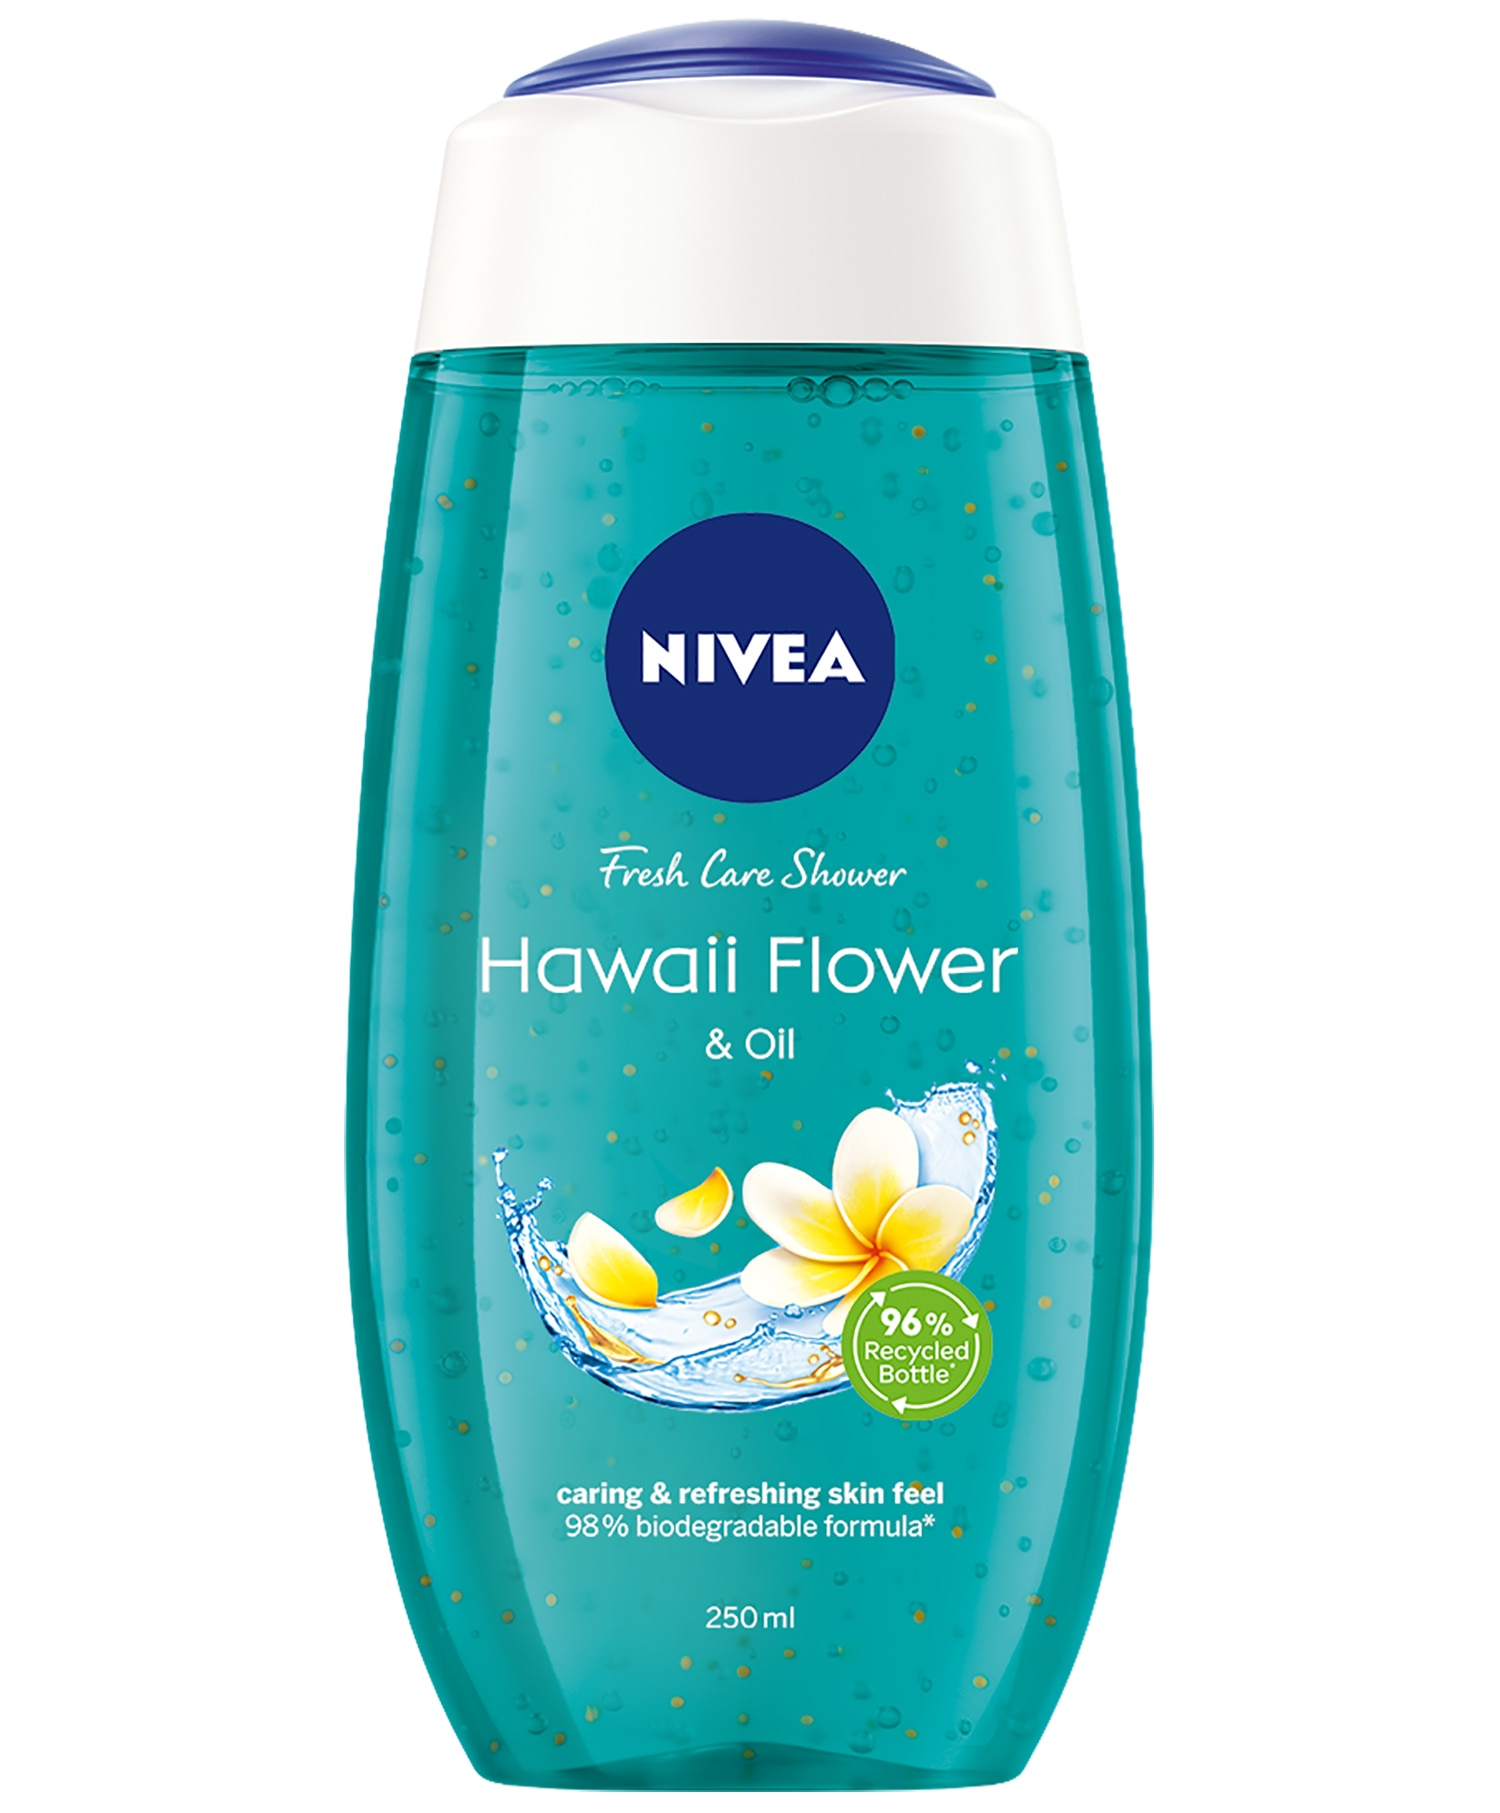 Nivea Shower Hawaii Flower & Oil